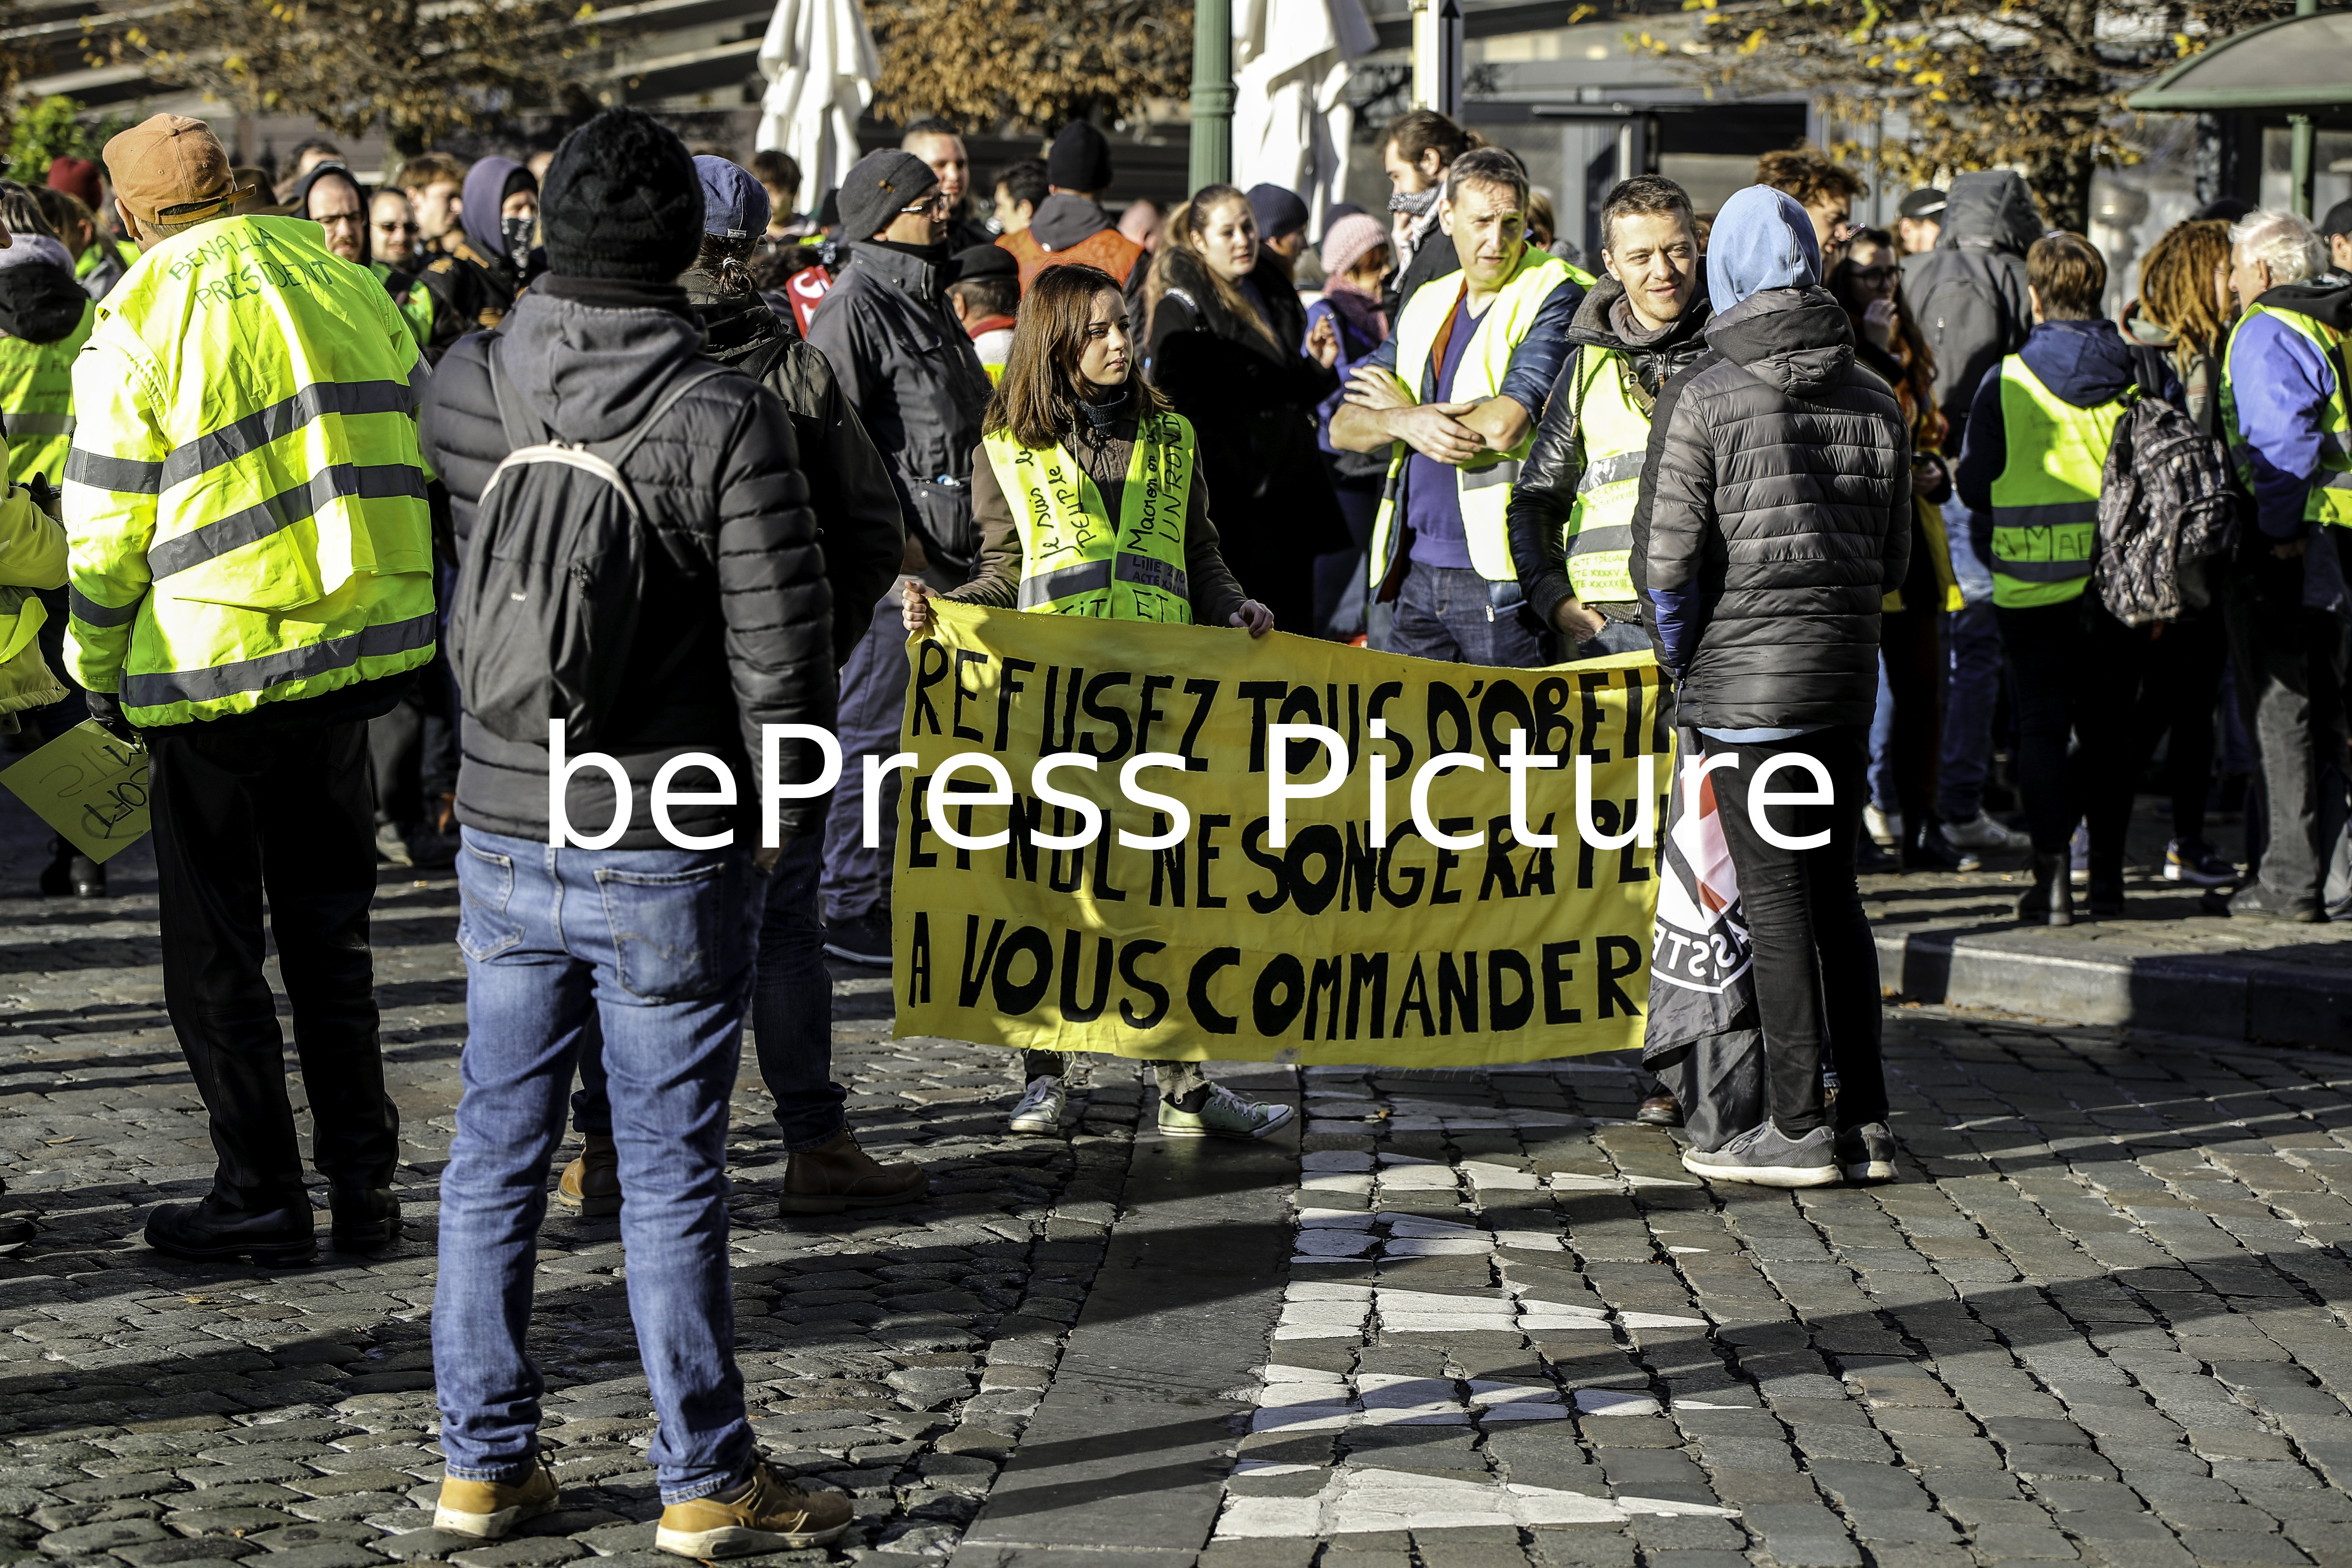 MANIFESTATION GILETS JAUNES ANNIVERSAIRE 1 AN BRUXELLES | MANIFESTATION YELLOW VESTS BIRTHDAY ONE YEAR BRUSSELS